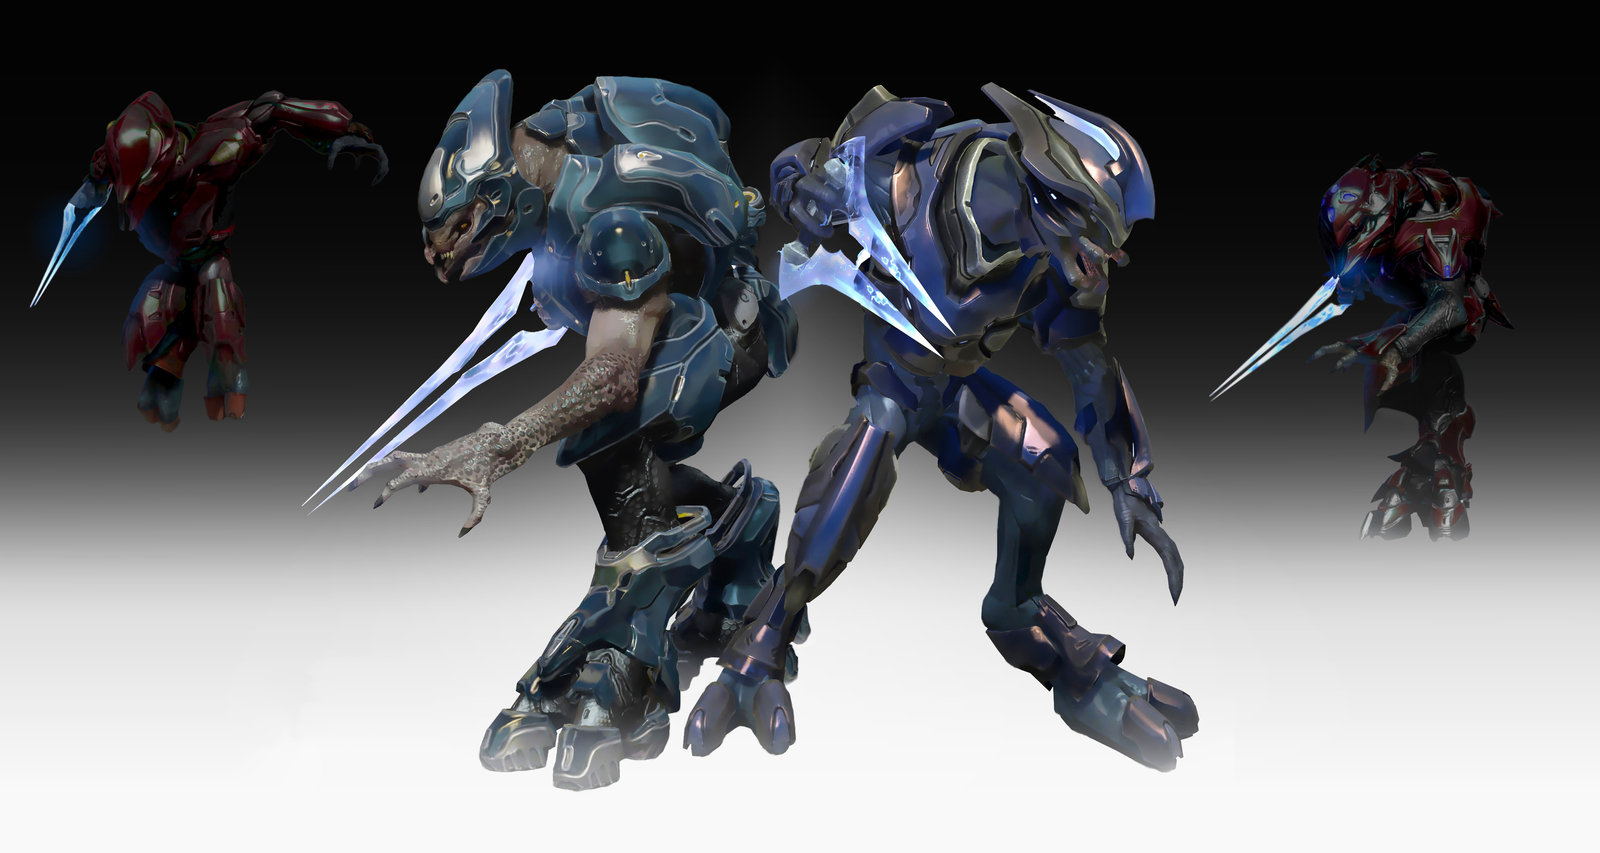 1600x853px Halo 4 Elite Wallpaper 1600x853